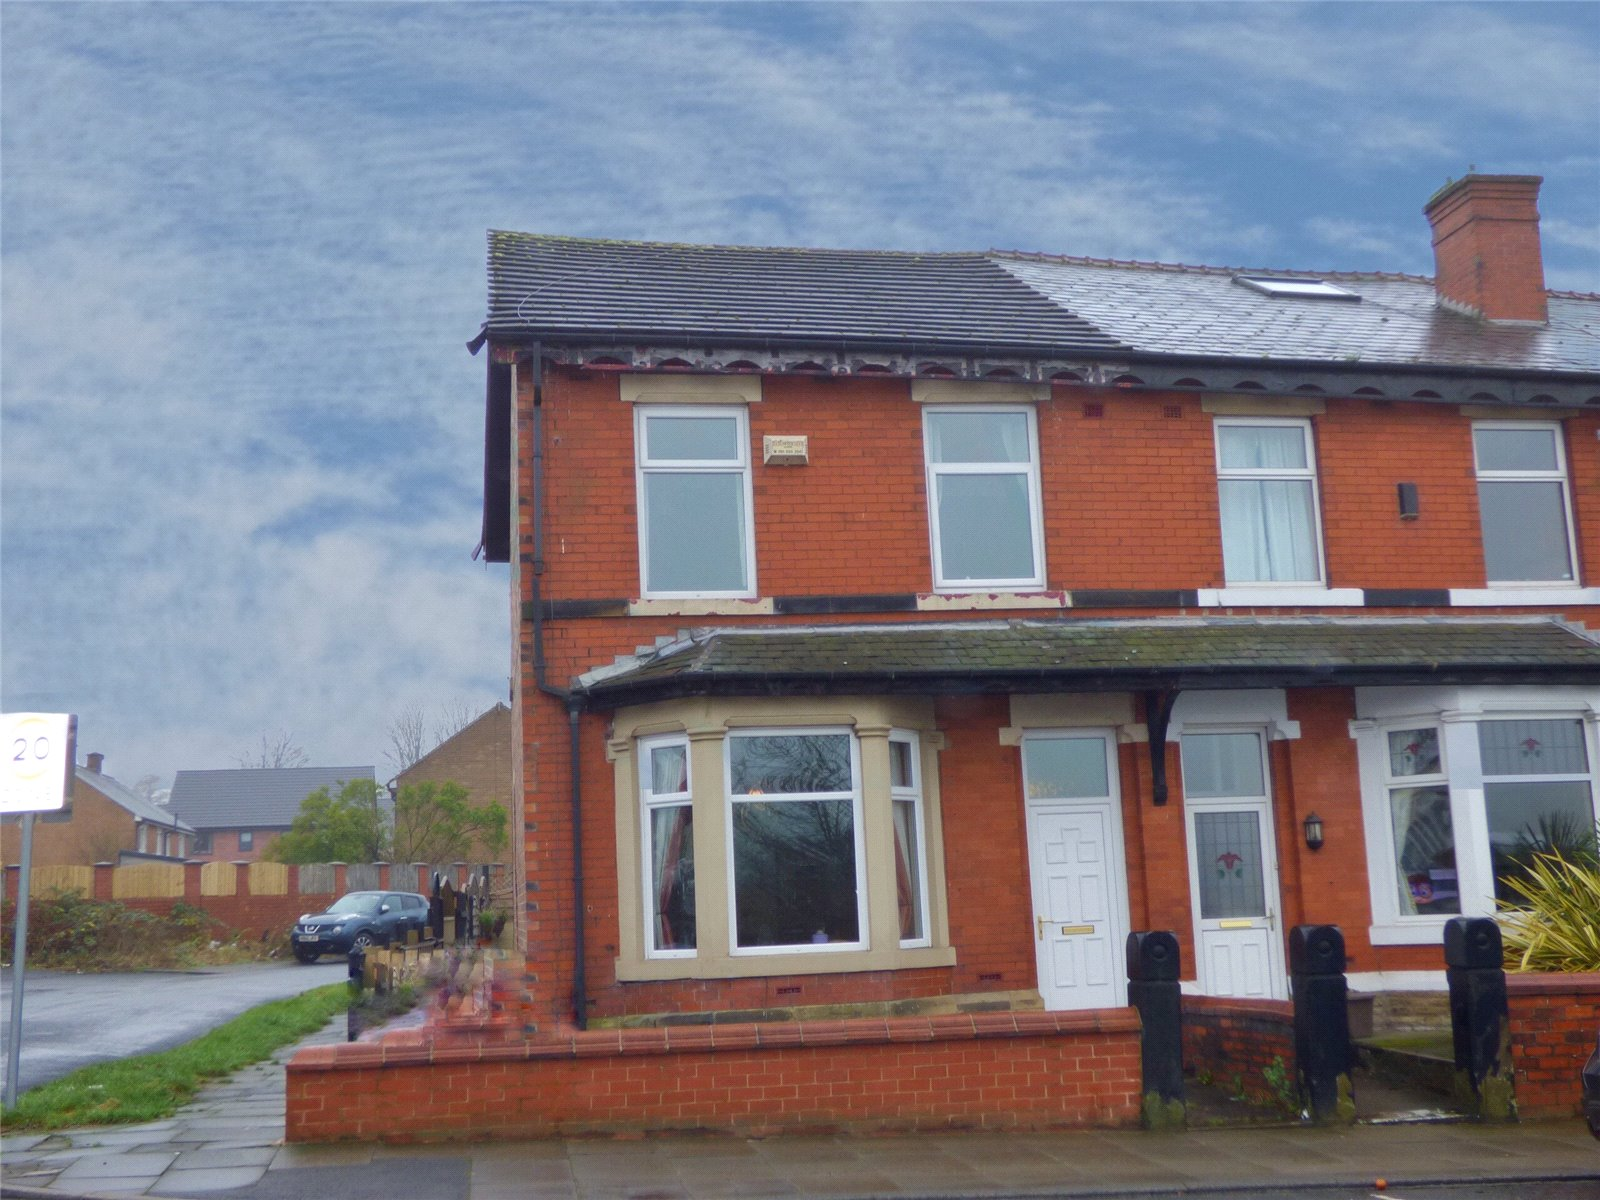 4 Bedrooms End Of Terrace House for sale in Bury New Road, Heywood, Greater Manchester, OL10